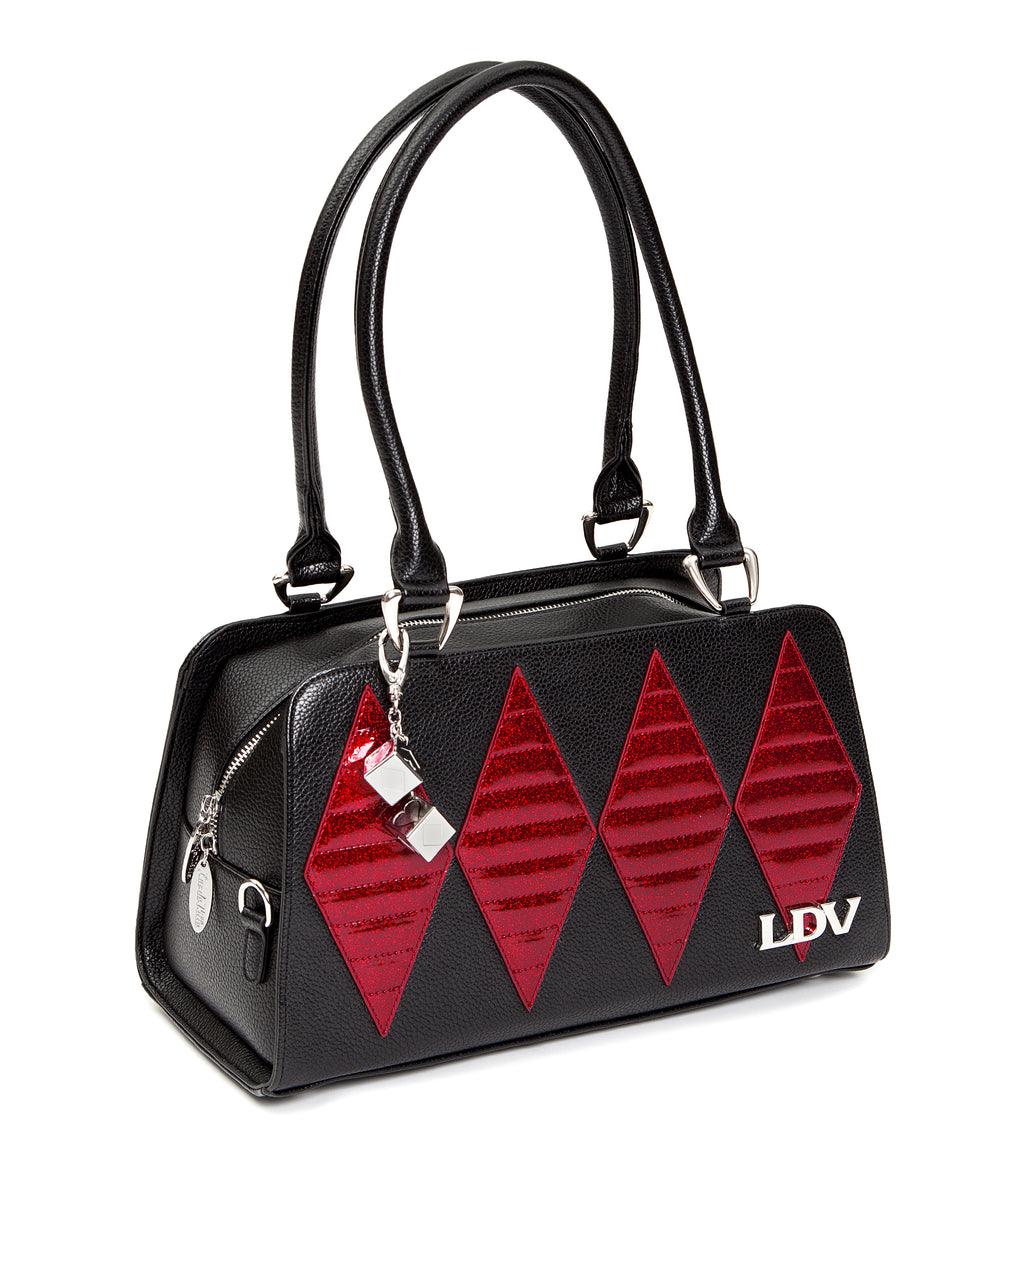 Crimson Red Sparkle High Roller Handbag Black Matte - Mini Atomic Totes